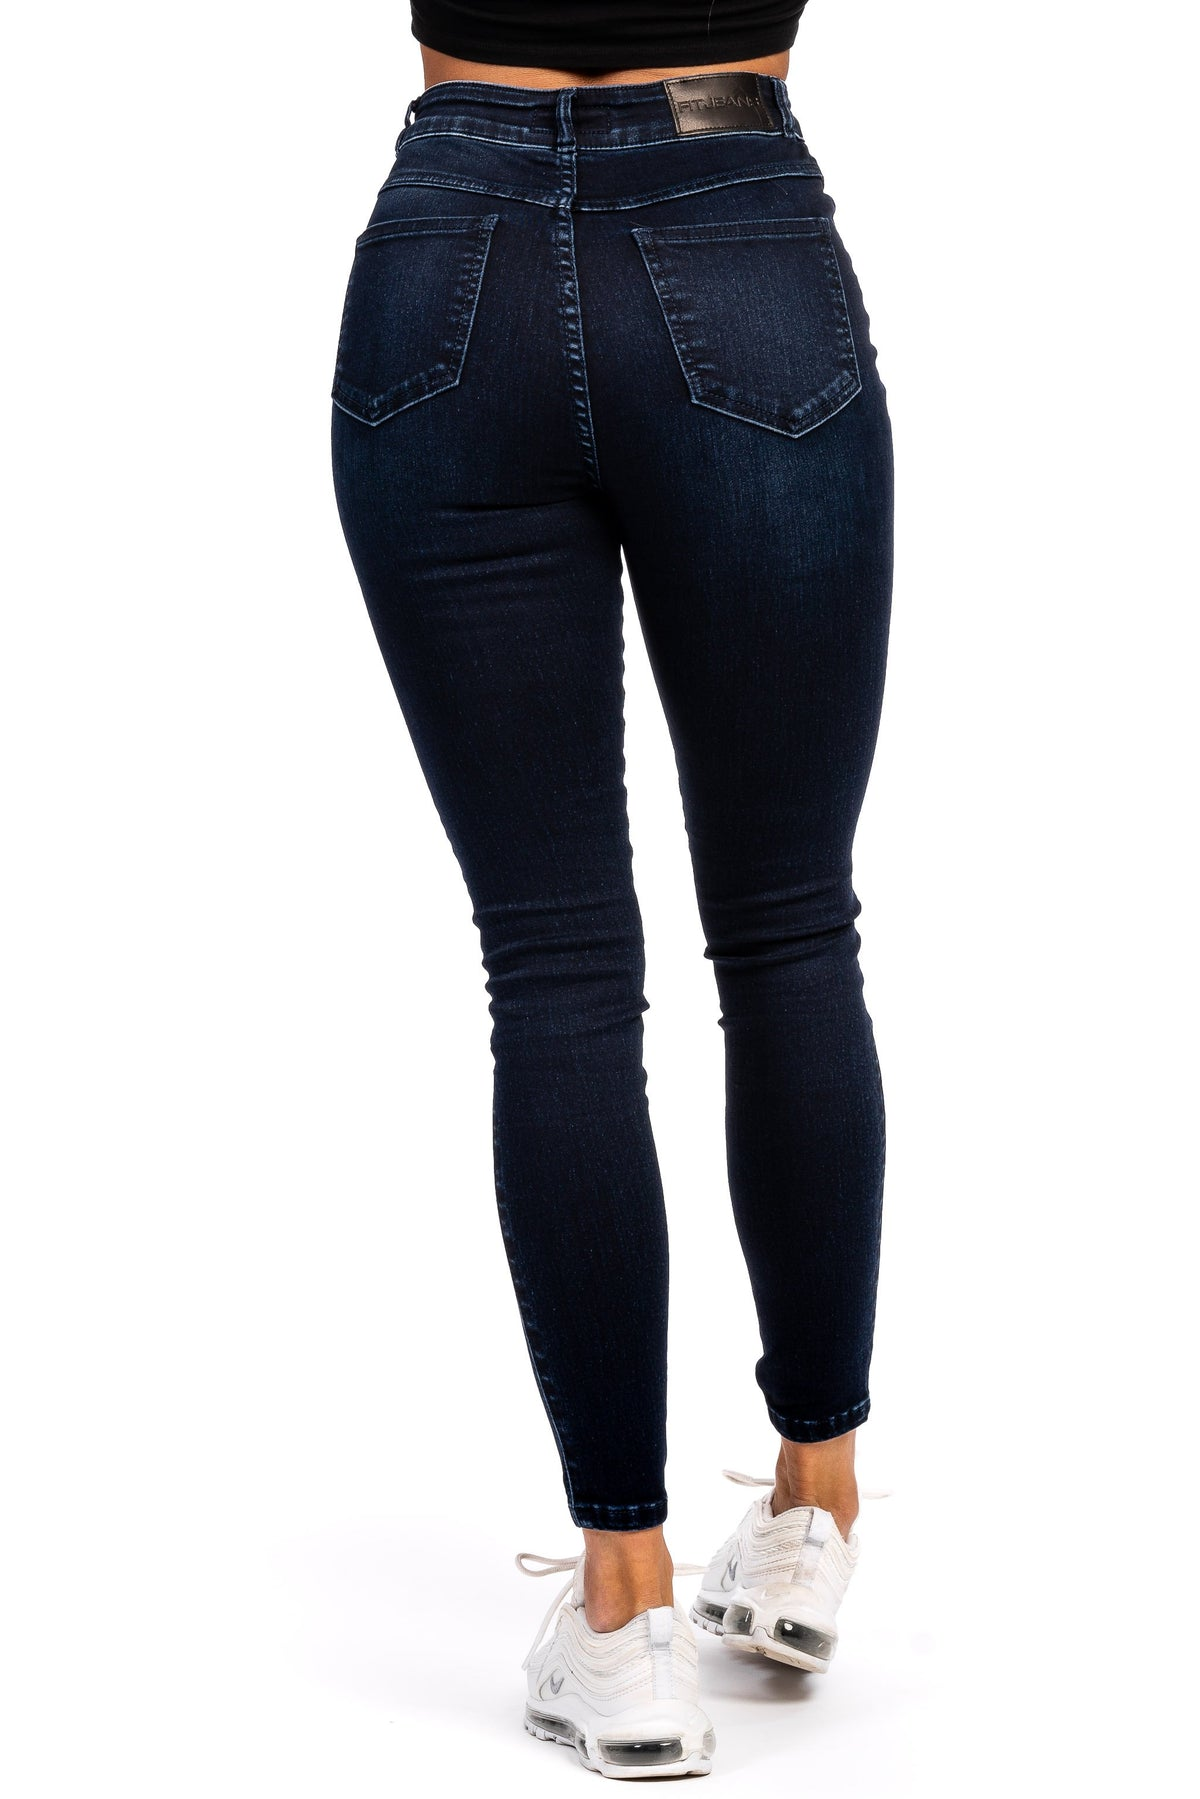 Womens Traditional High Waisted Fitjeans - Midnight Navy